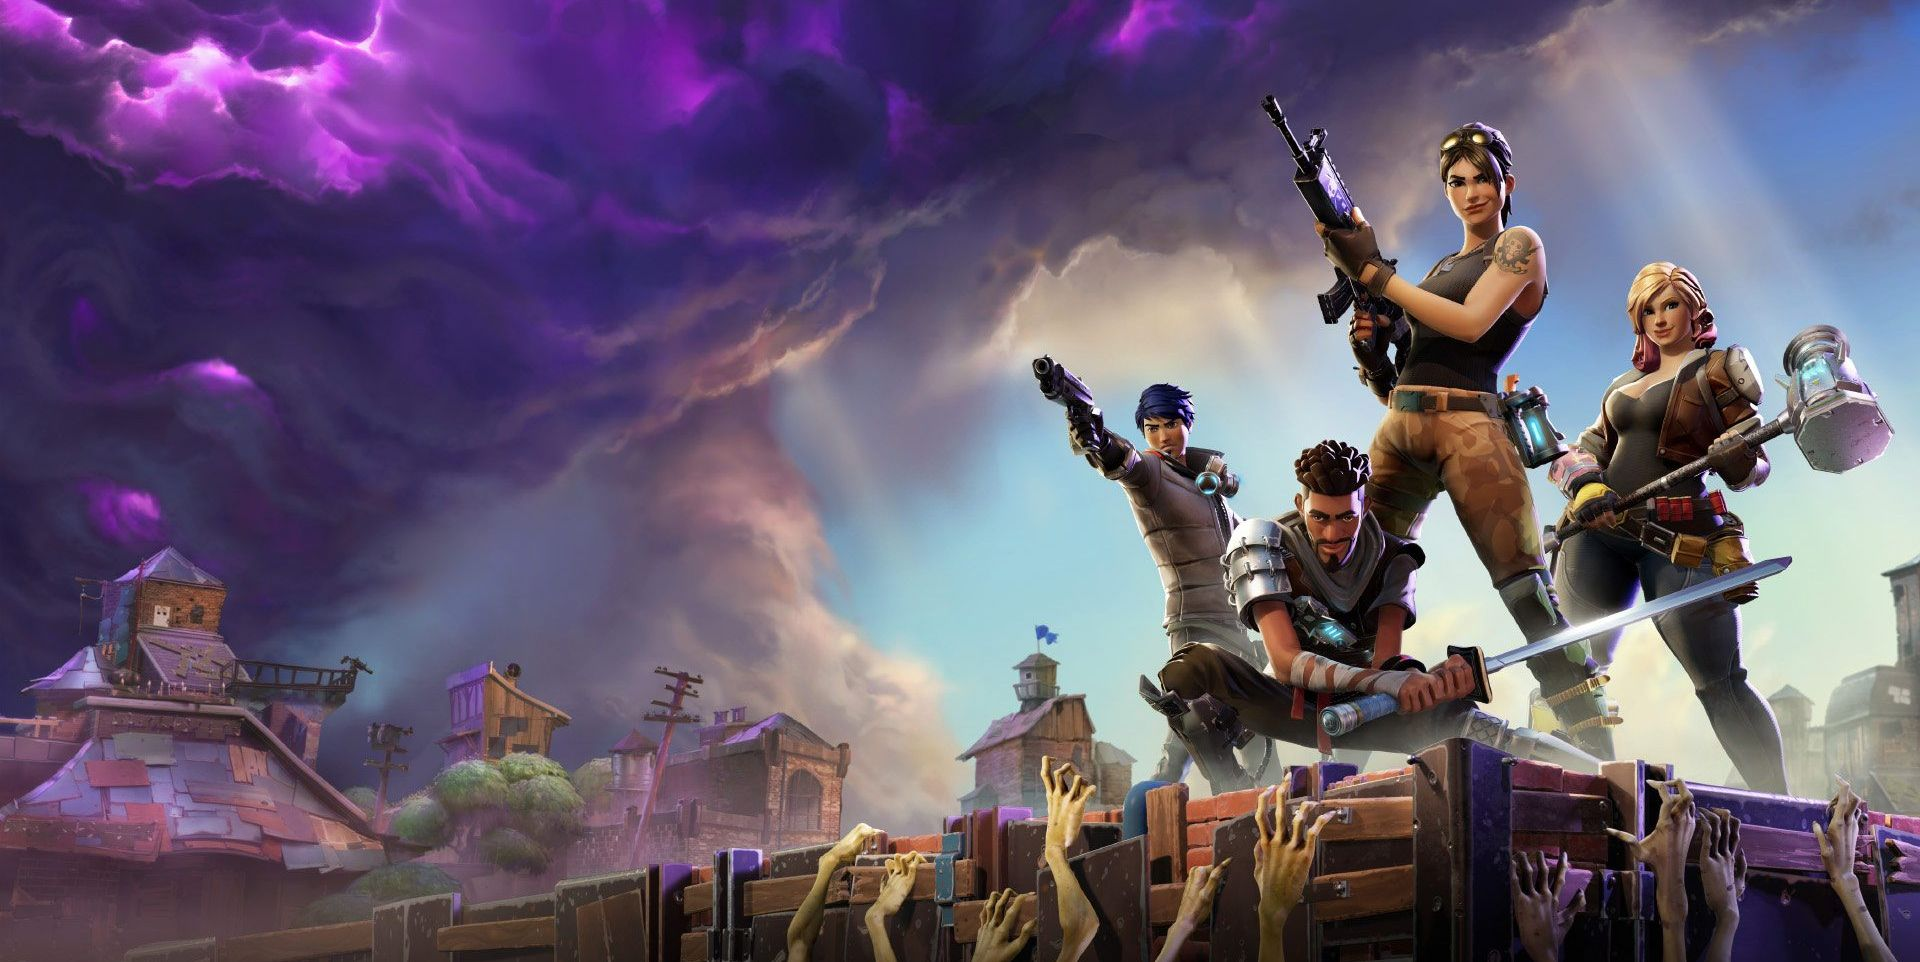 Fortnite Video Game Addiction Led To 200 Divorces This Year Alone